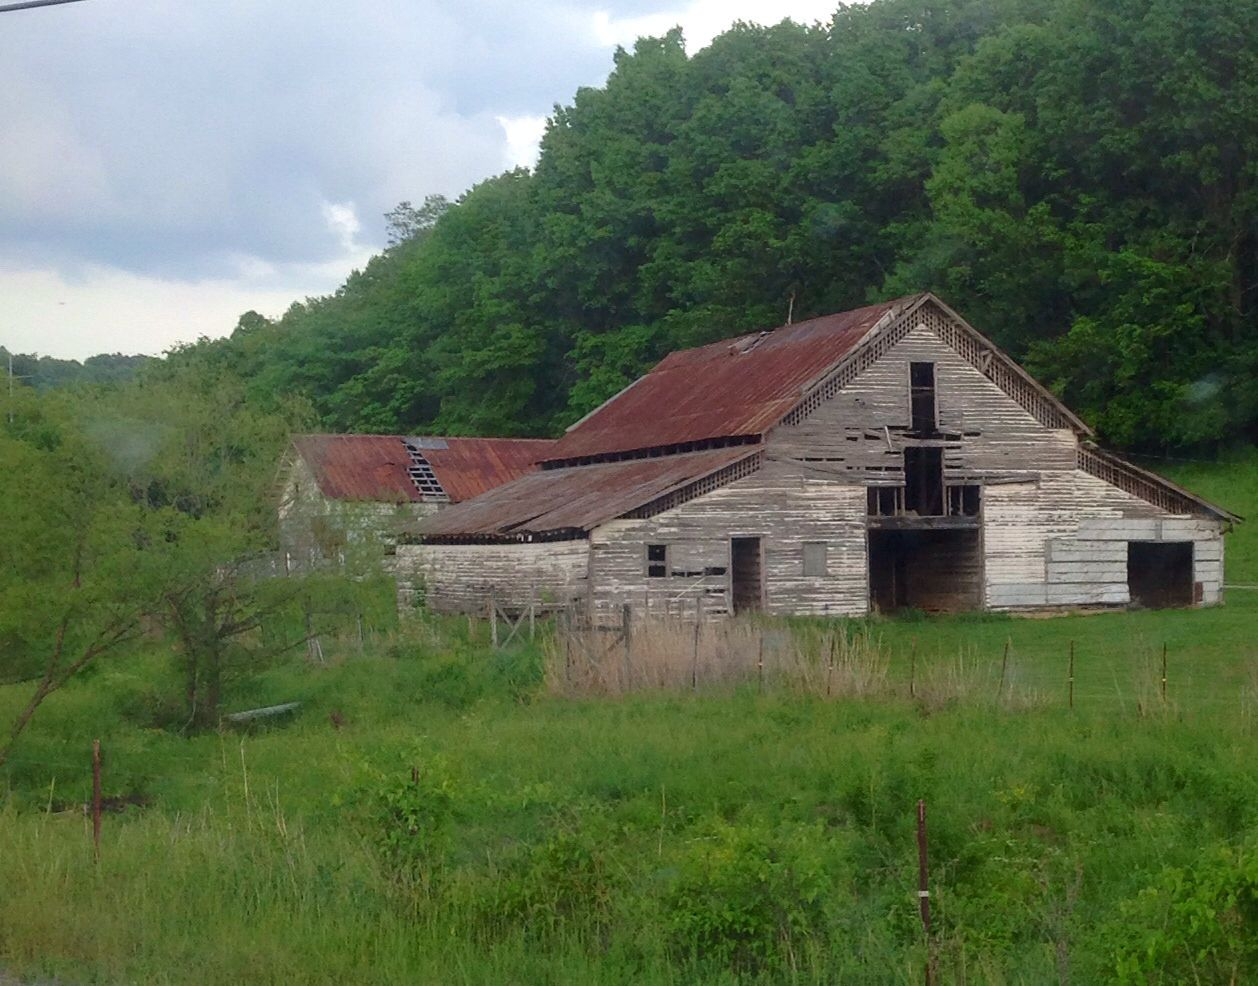 Old barn in Tennessee | Old barn, House styles, Barn